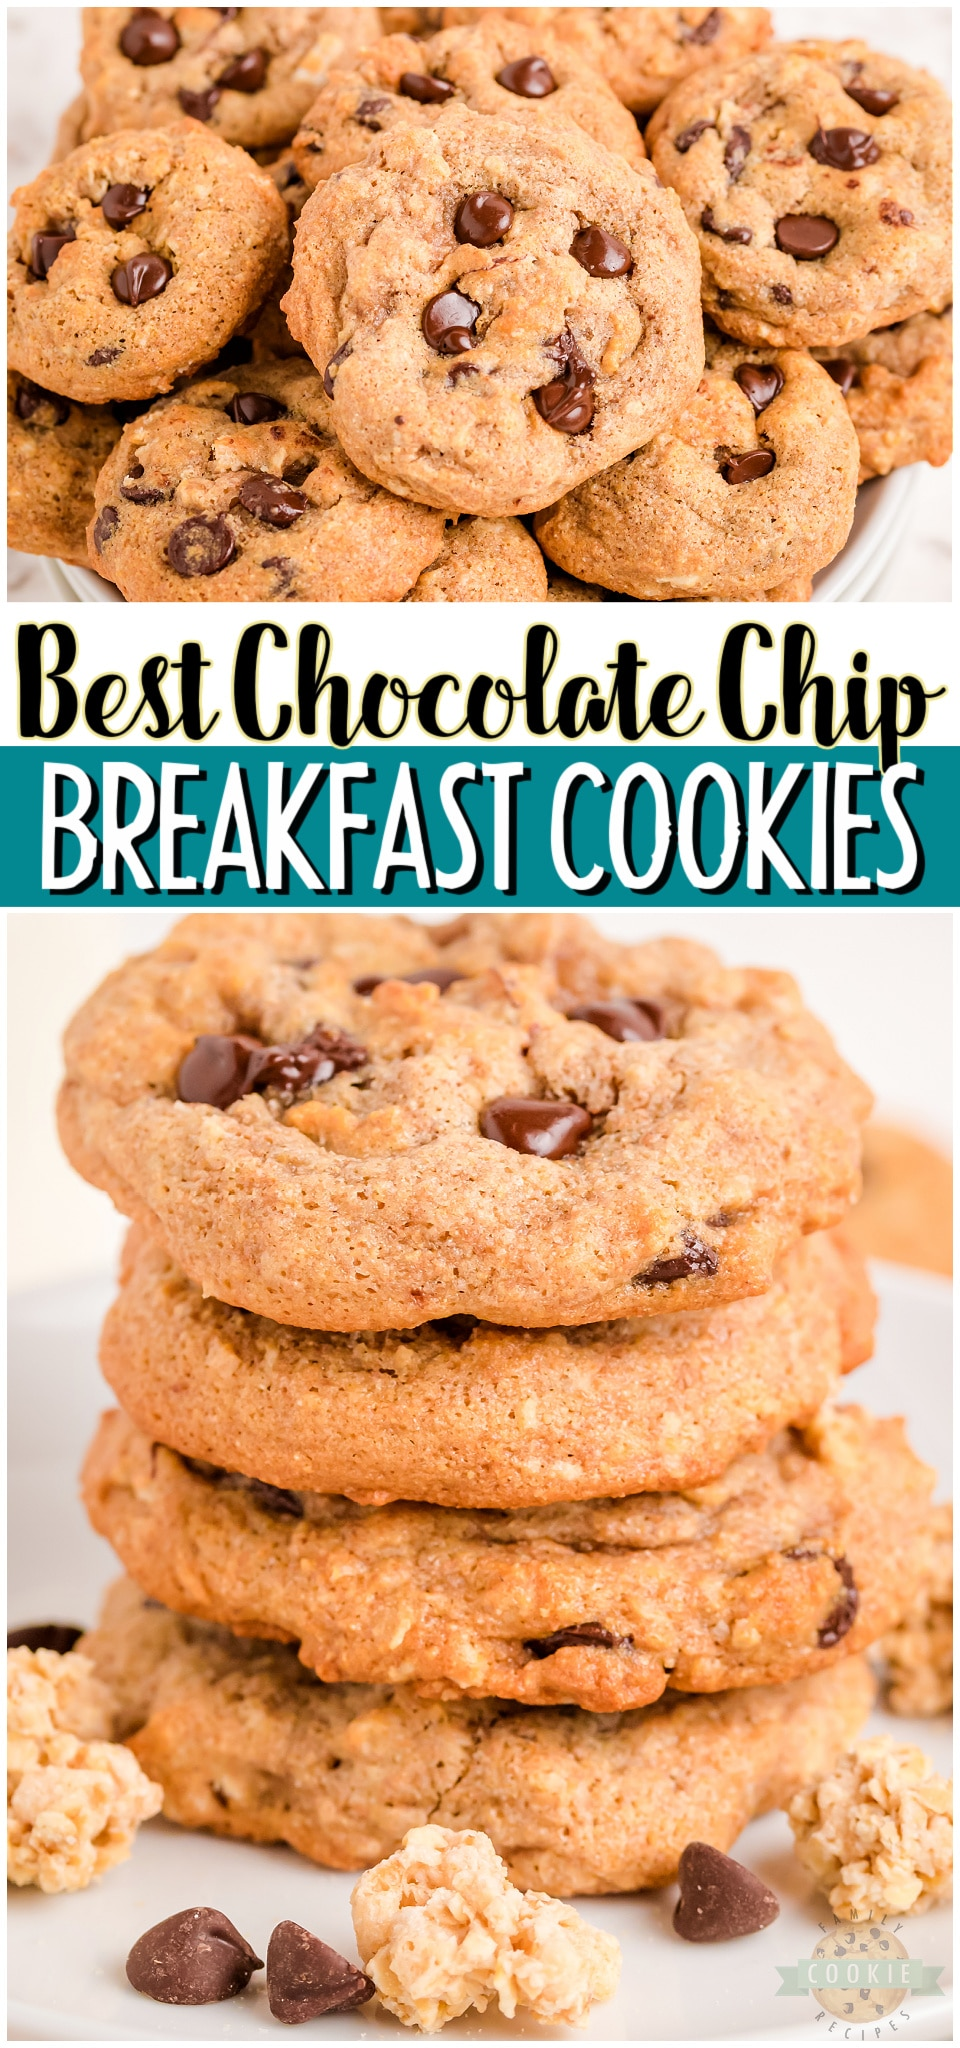 Breakfast chocolate chip cookies are a perfect snack that you can feel good about. Whole wheat flour, applesauce, granola, & dark chocolate combine to make tasty low-calorie & low sugar cookies! #breakfast #cookies #chocolatechip #baking #lowsugar #lowcal #easyrecipe from FAMILY COOKIE RECIPES via @familycookierecipes